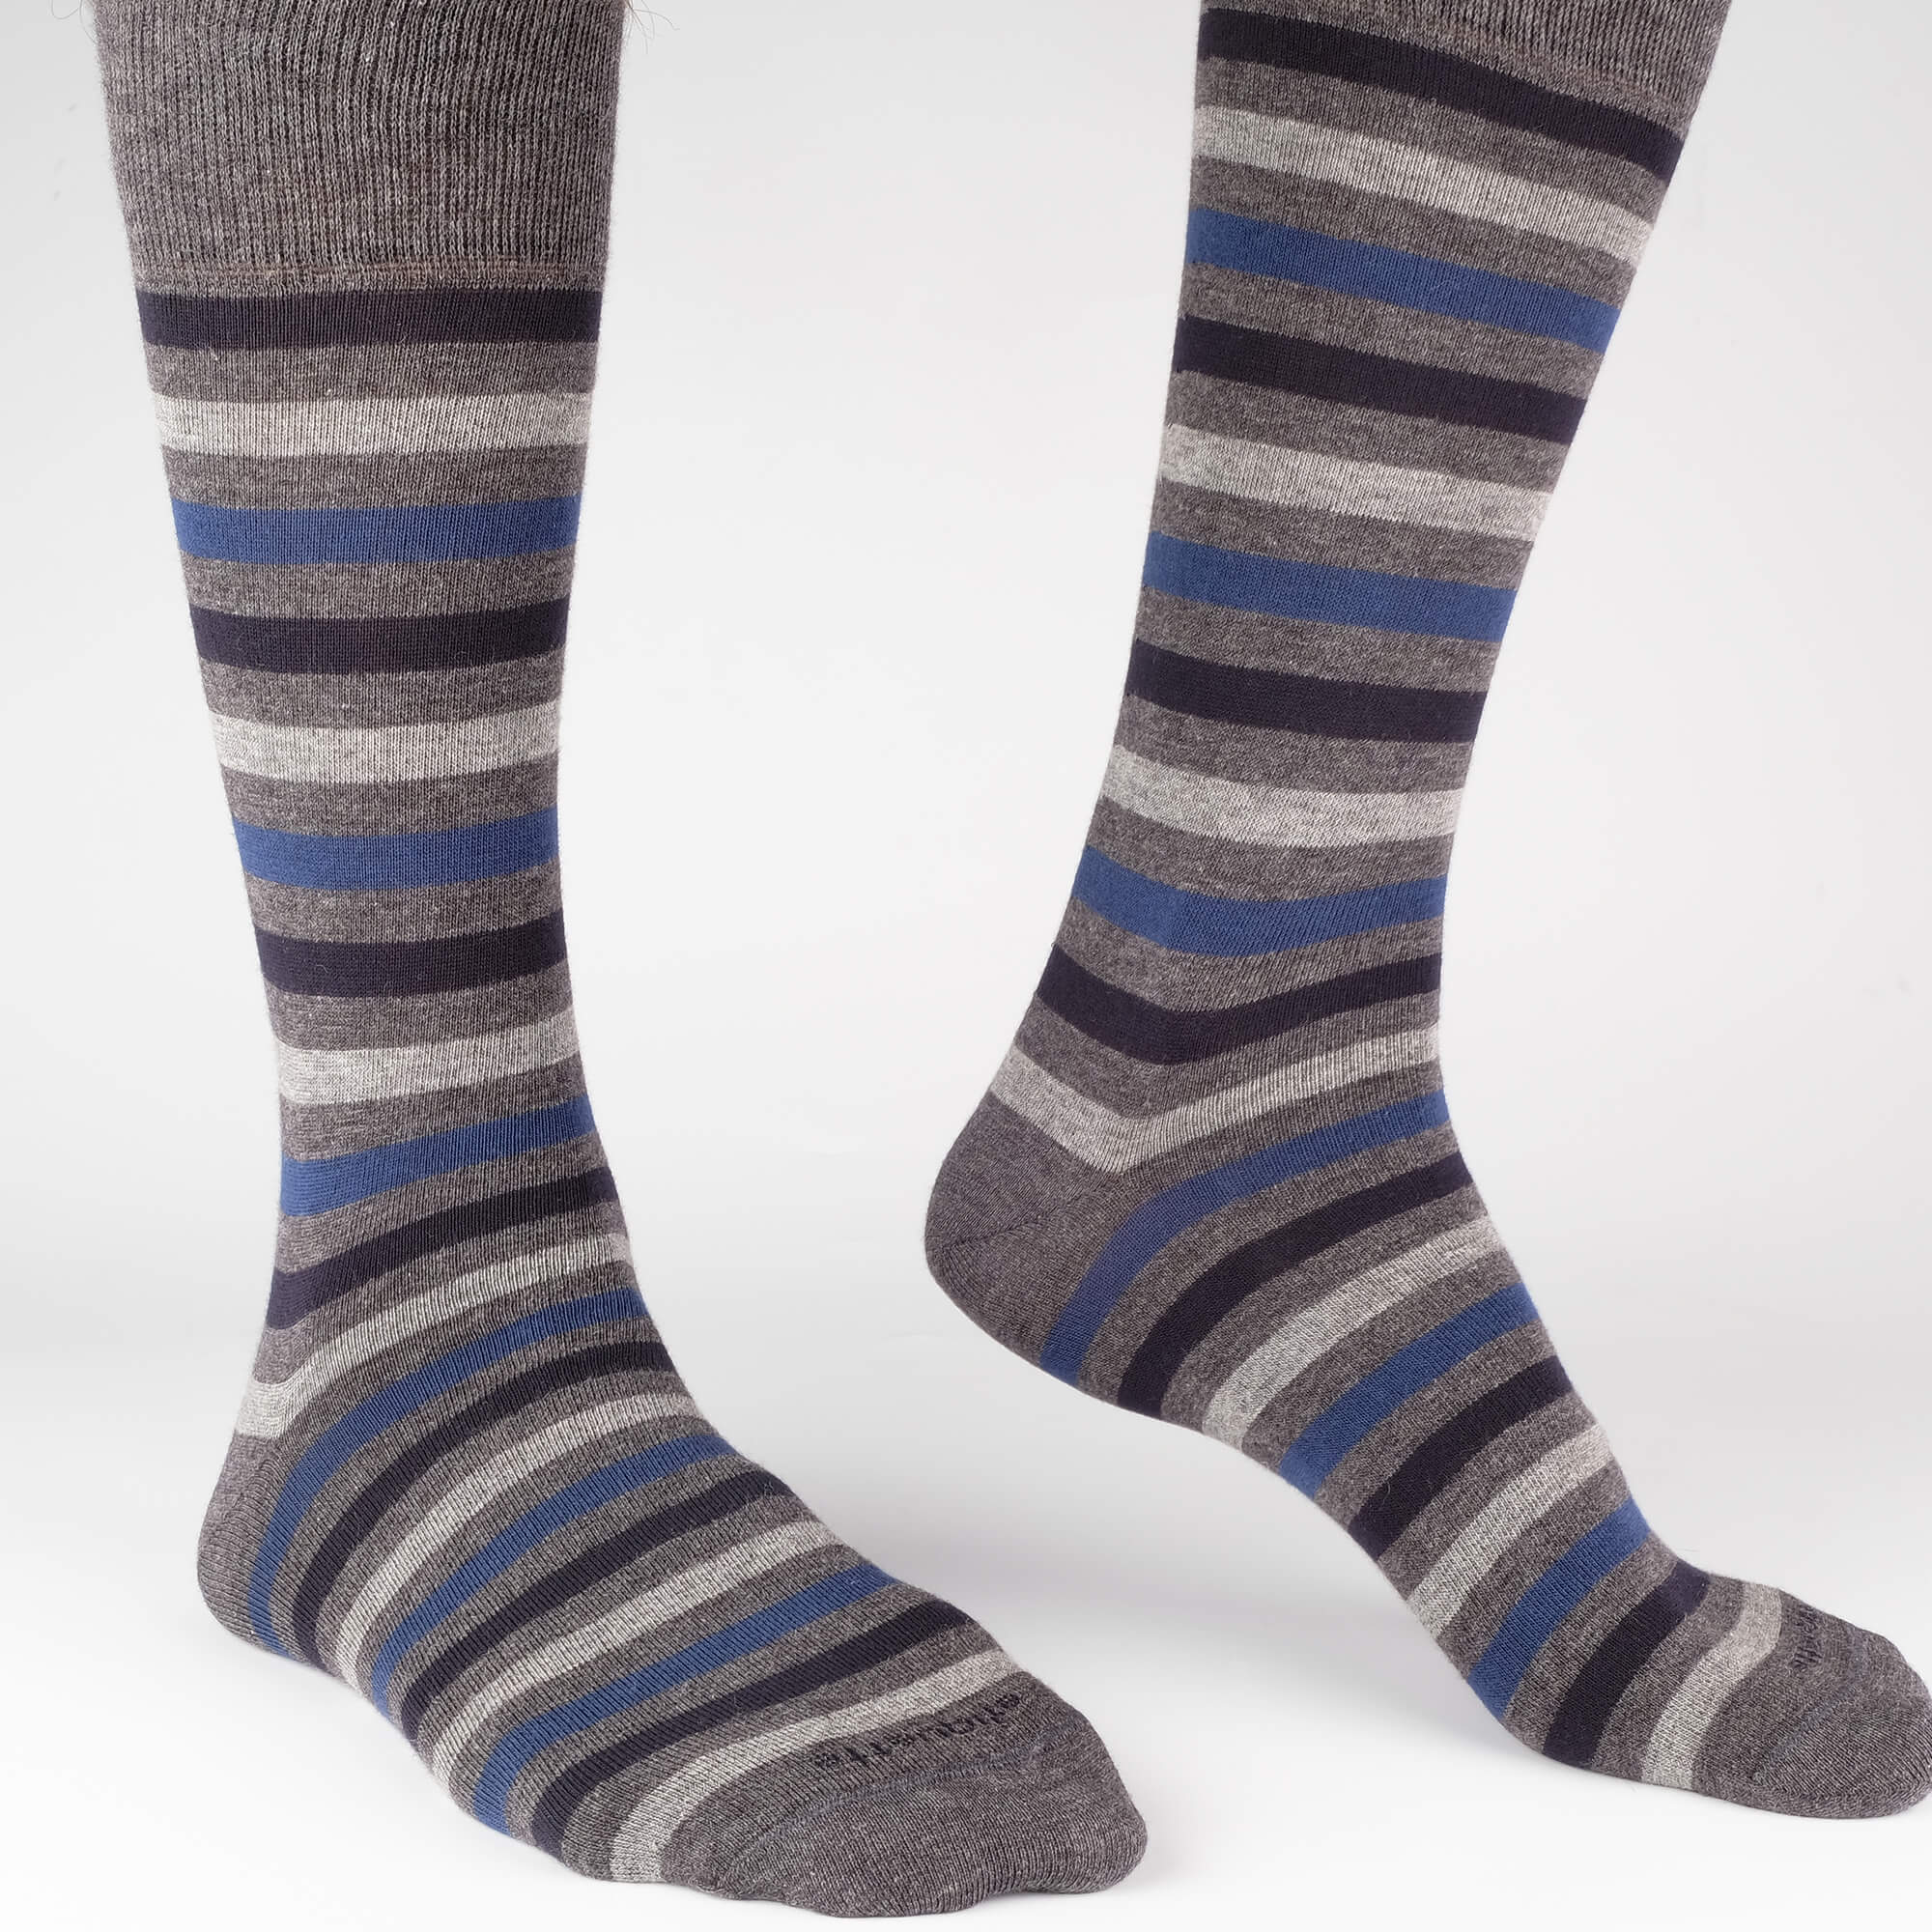 Crosswalk Stripes Men's Socks - Grey